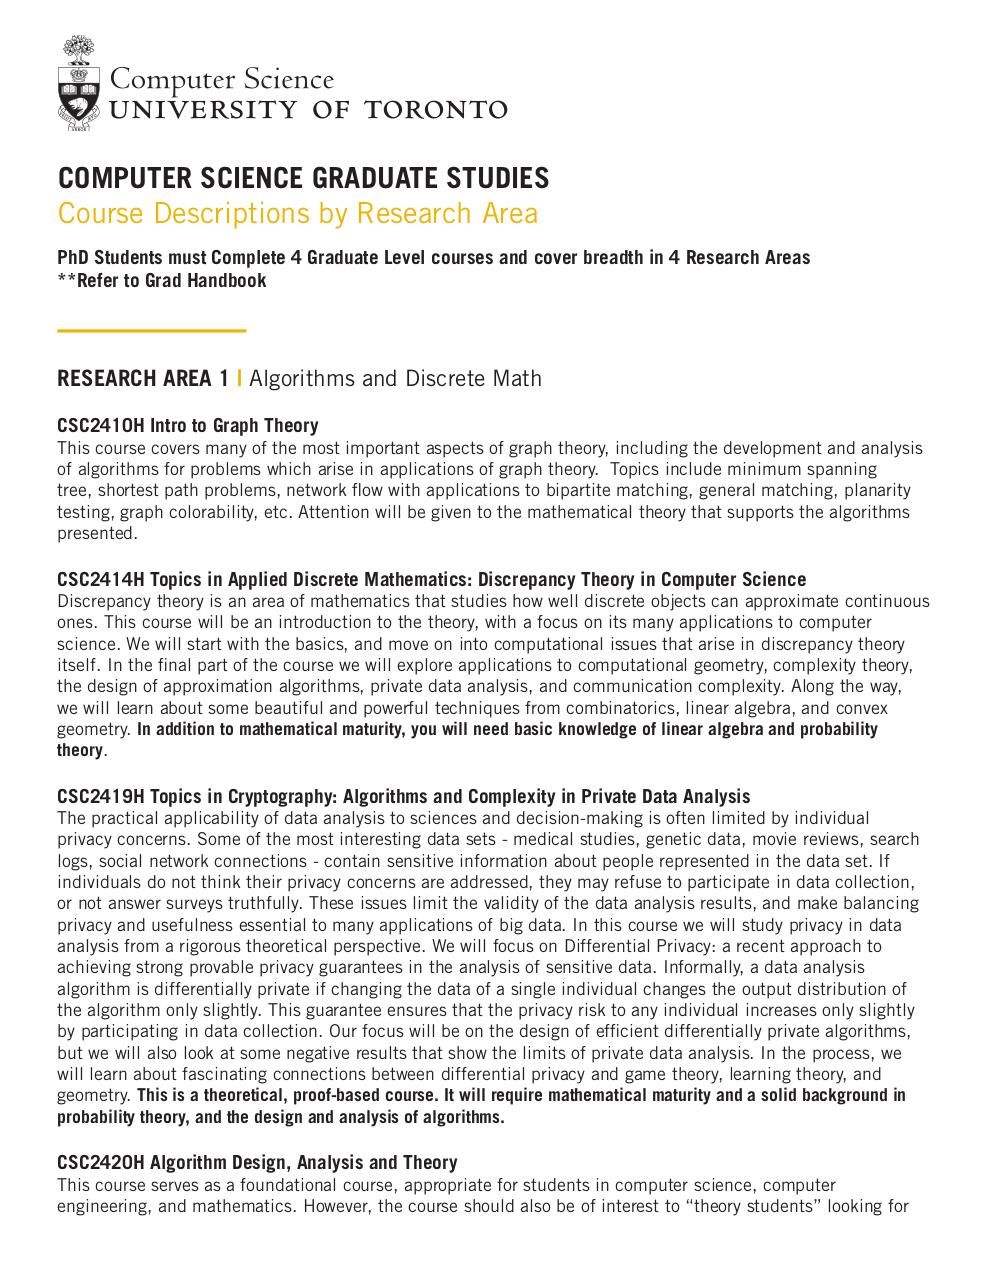 Grad CourseDescriptions ResearchArea - PDF Archive